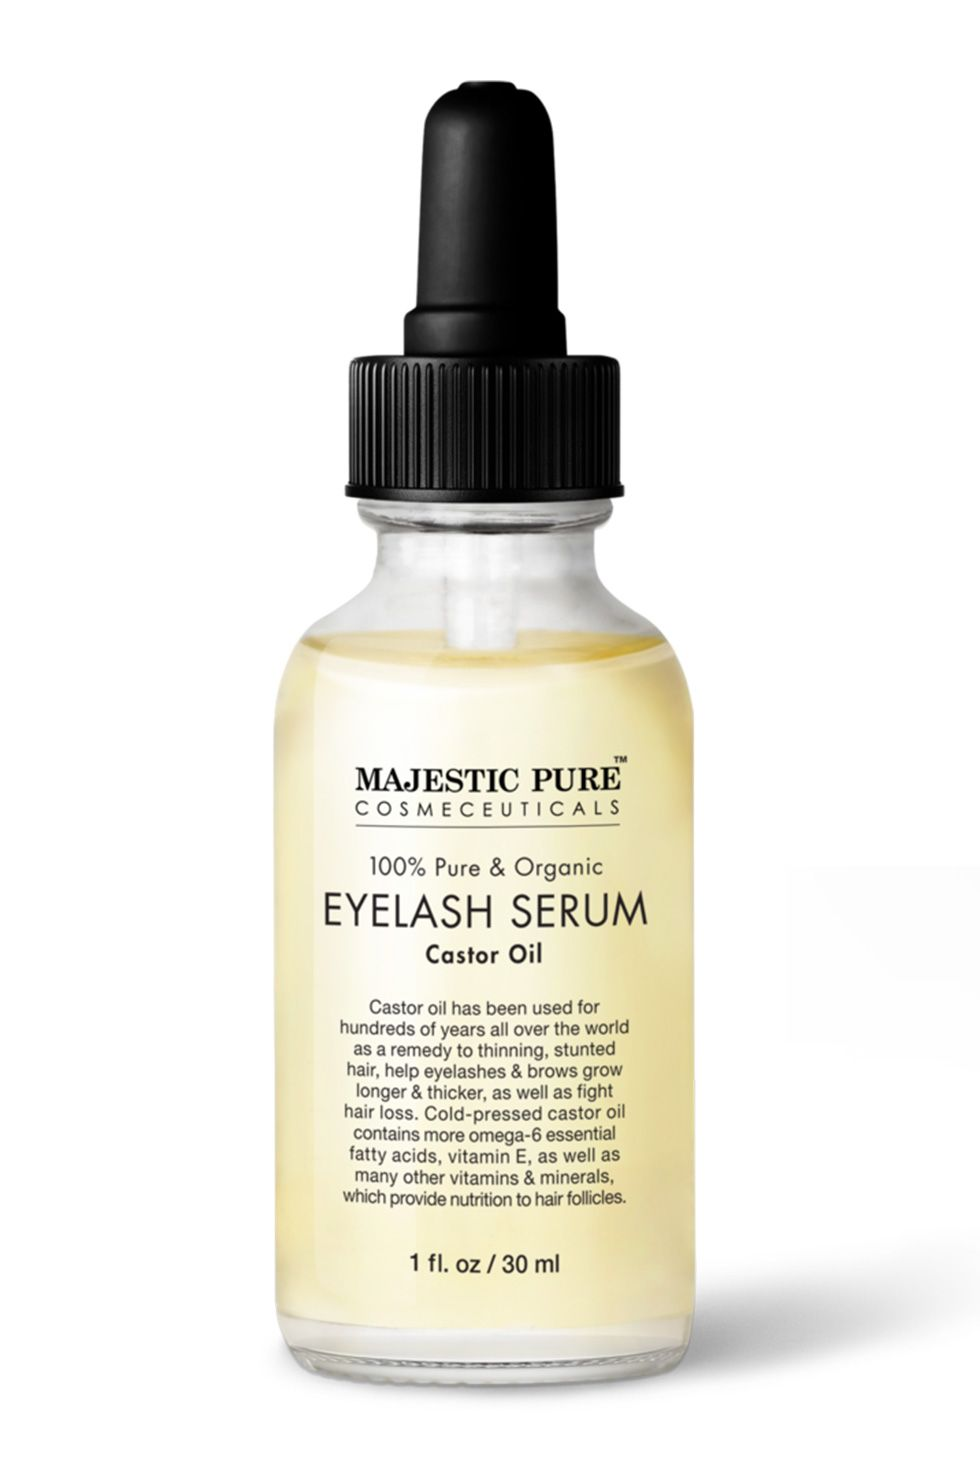 10 Eyelash Growth Serums That Will Give You Longer Fuller Lashes